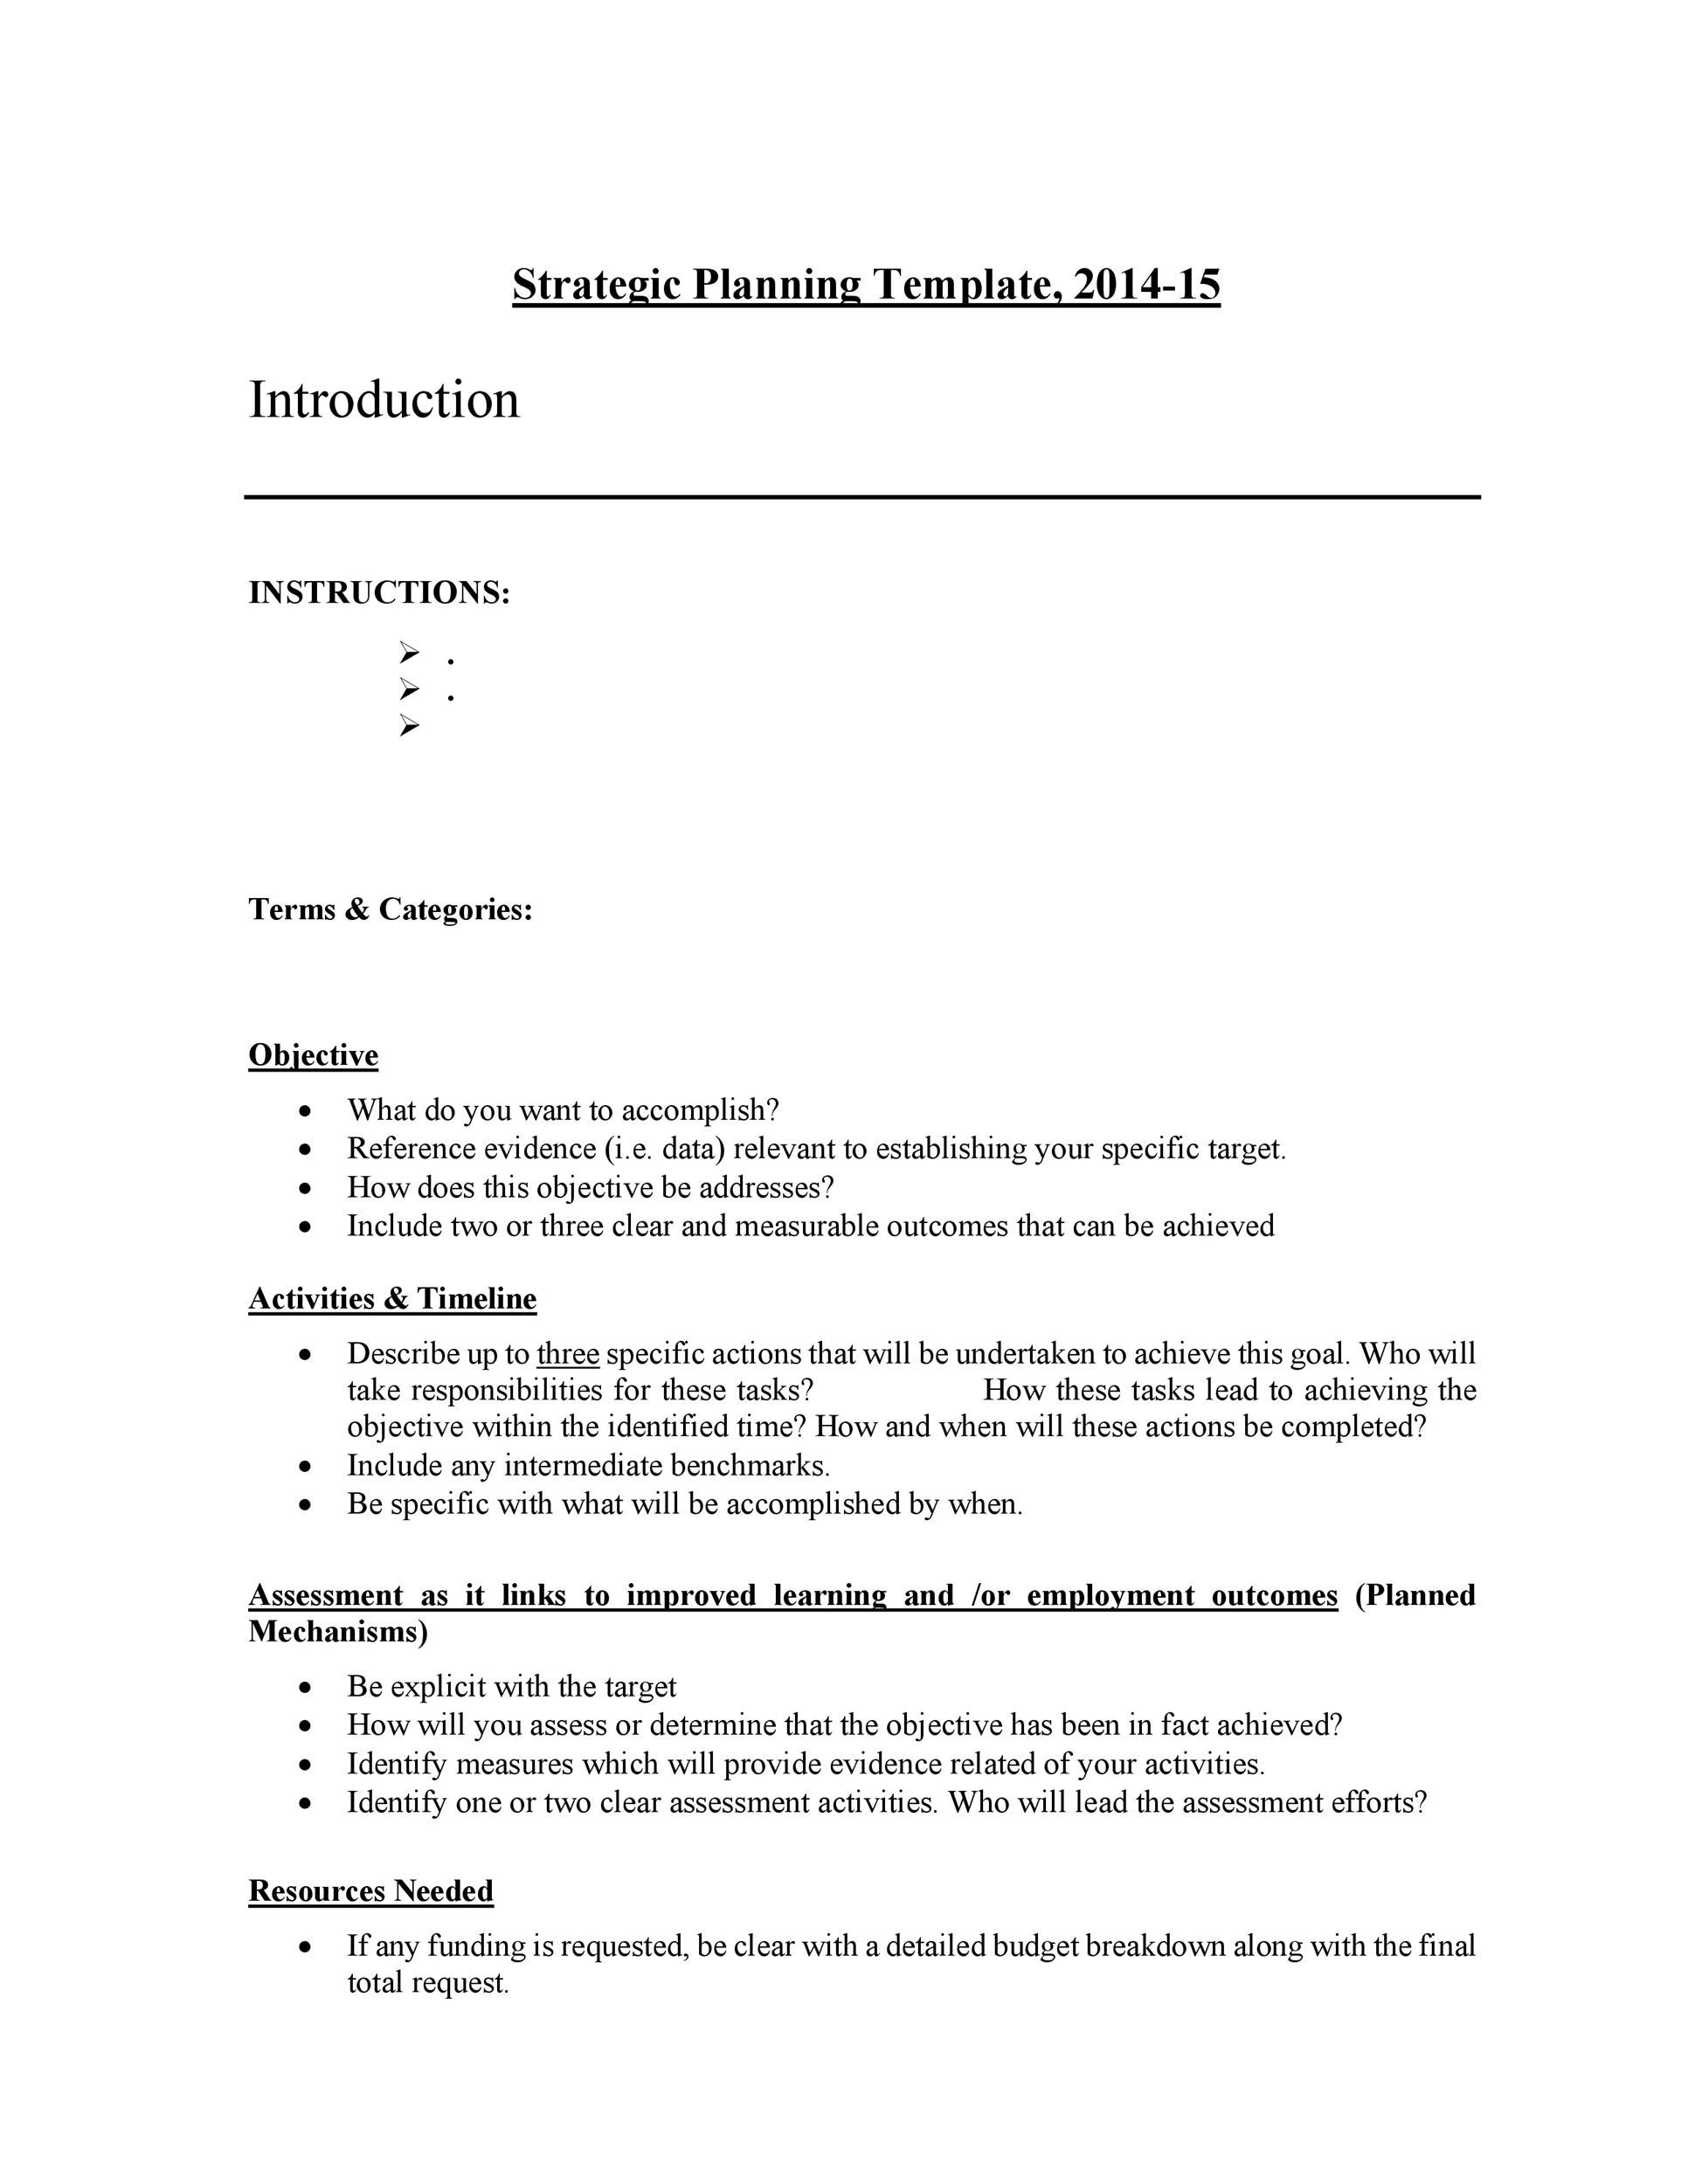 Strategic Plan Template 16